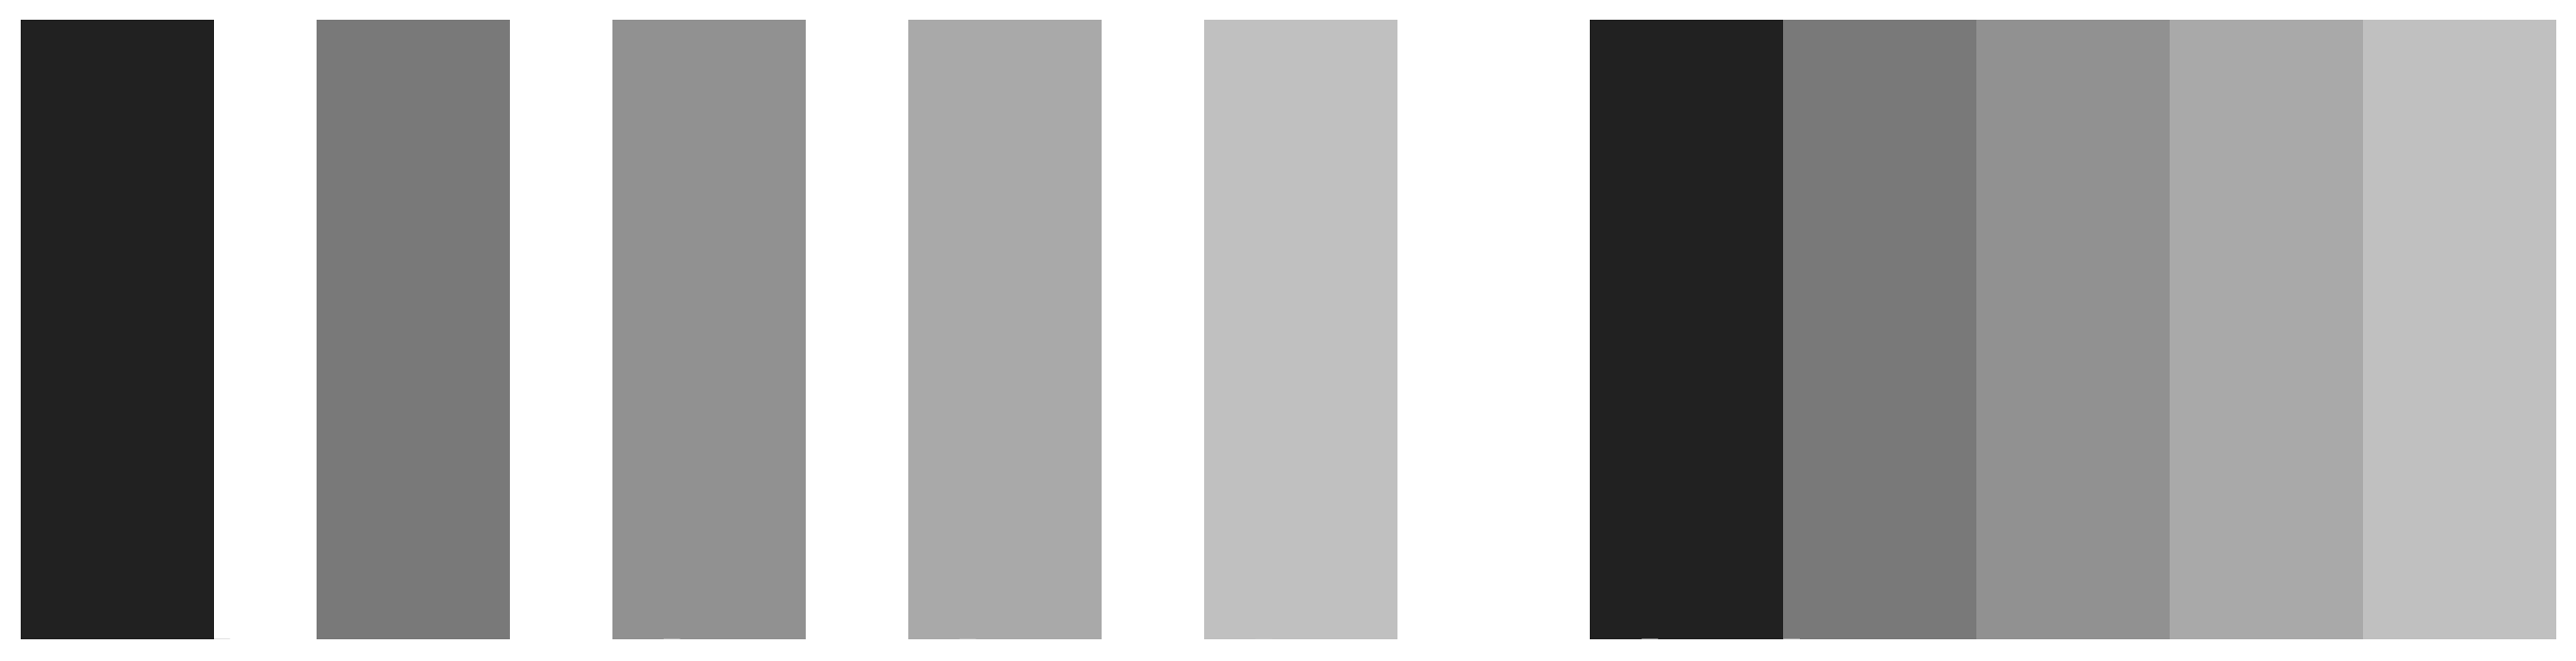 Mach bands. On the left side, five grey bars are ordered from dark to light, with gaps between them. On the right side, the bars have no gap between them. The brightness or luminance of the corresponding bars is the same. However, when the bars touch, the dark areas seem darker and the light areas lighter.